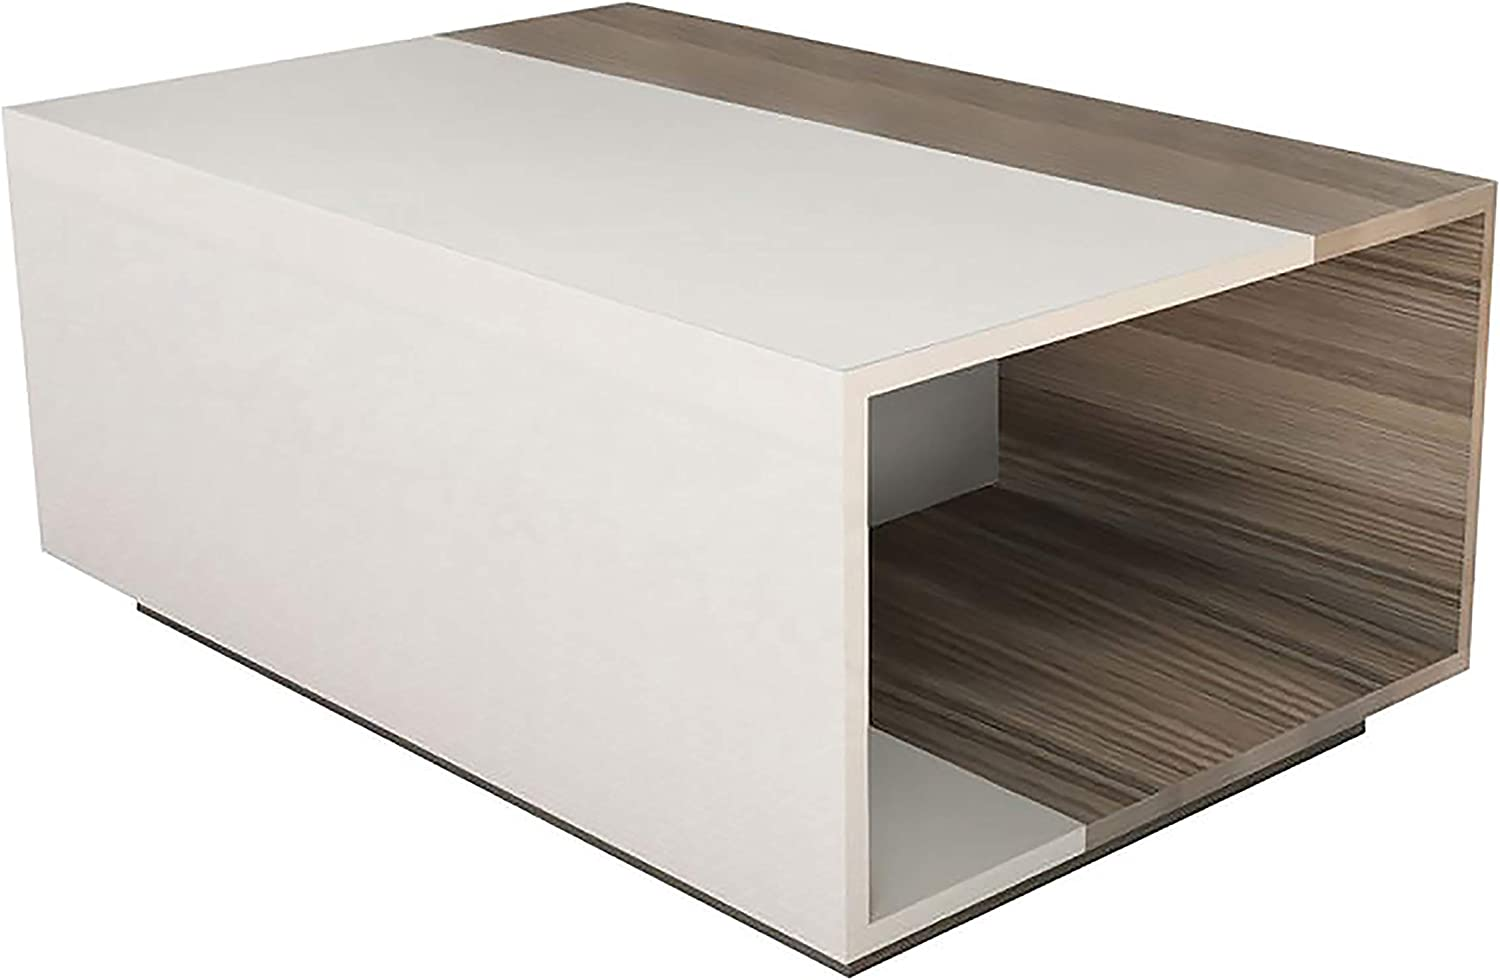 Decgoldtika - Surprise Modern Coffee and Cocktail Table - Living Room Furniture